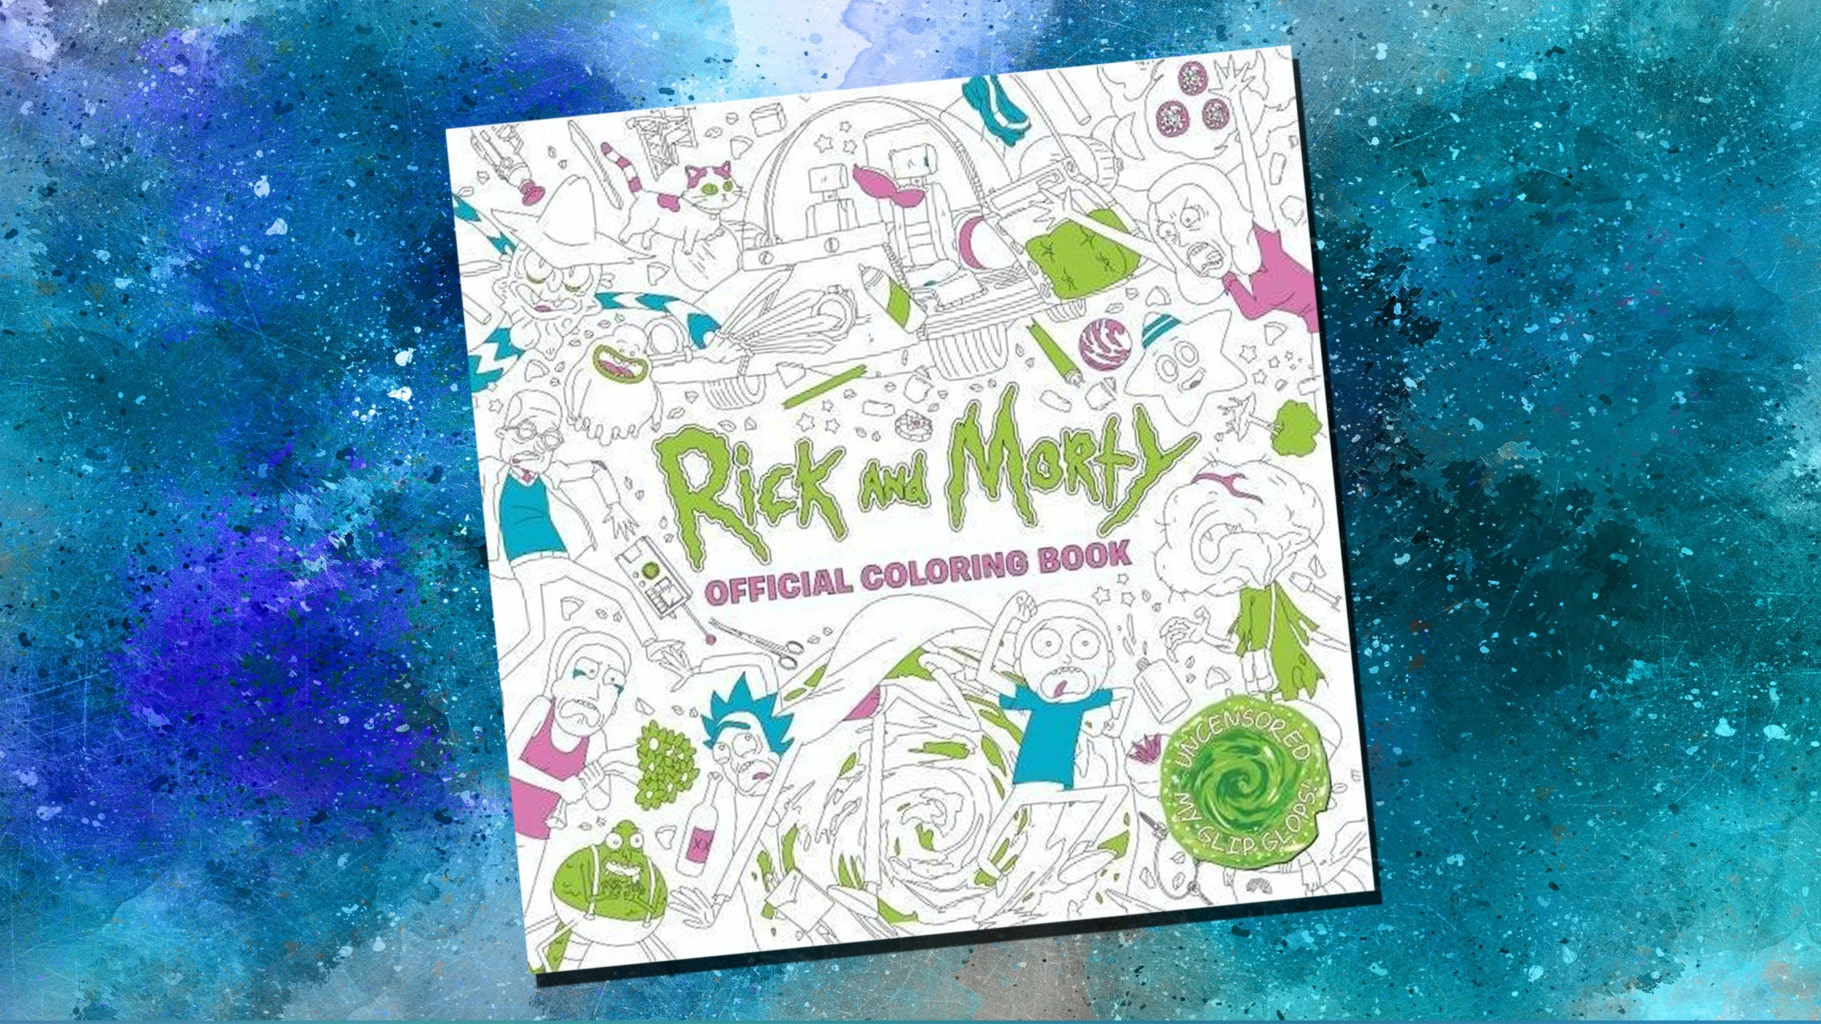 Get schwifty with this coloring book, broh.